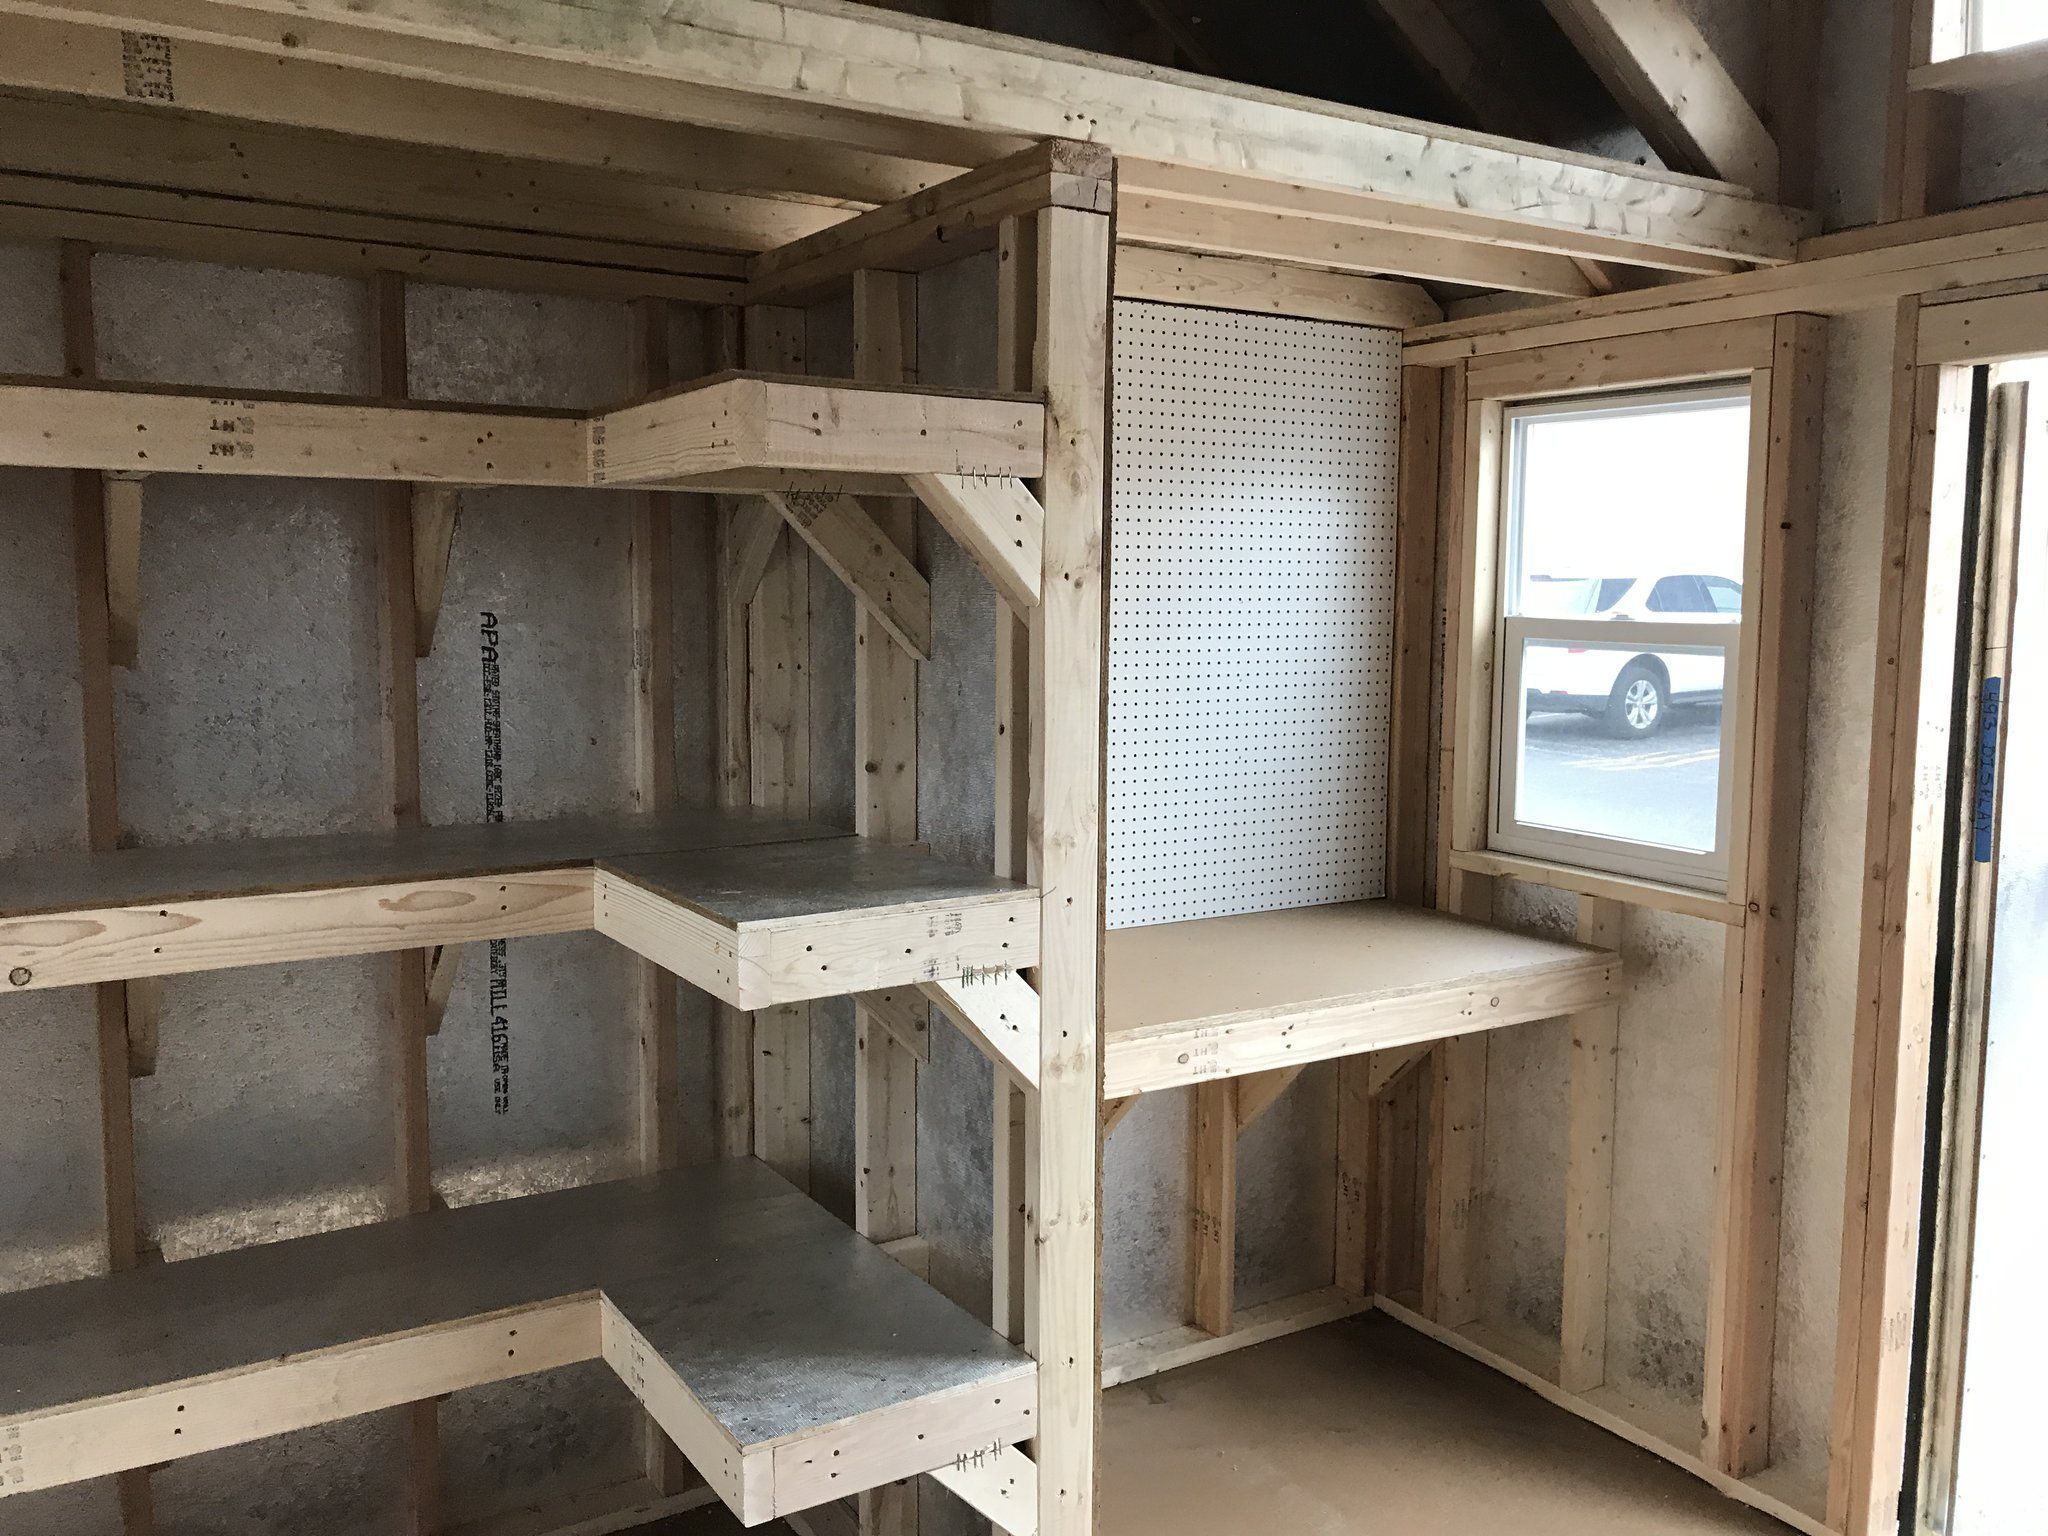 Charmant Shelving, Pegboards, A Workbench, And A Loft. This Storage Shed Is Ready  For Just About Anything!